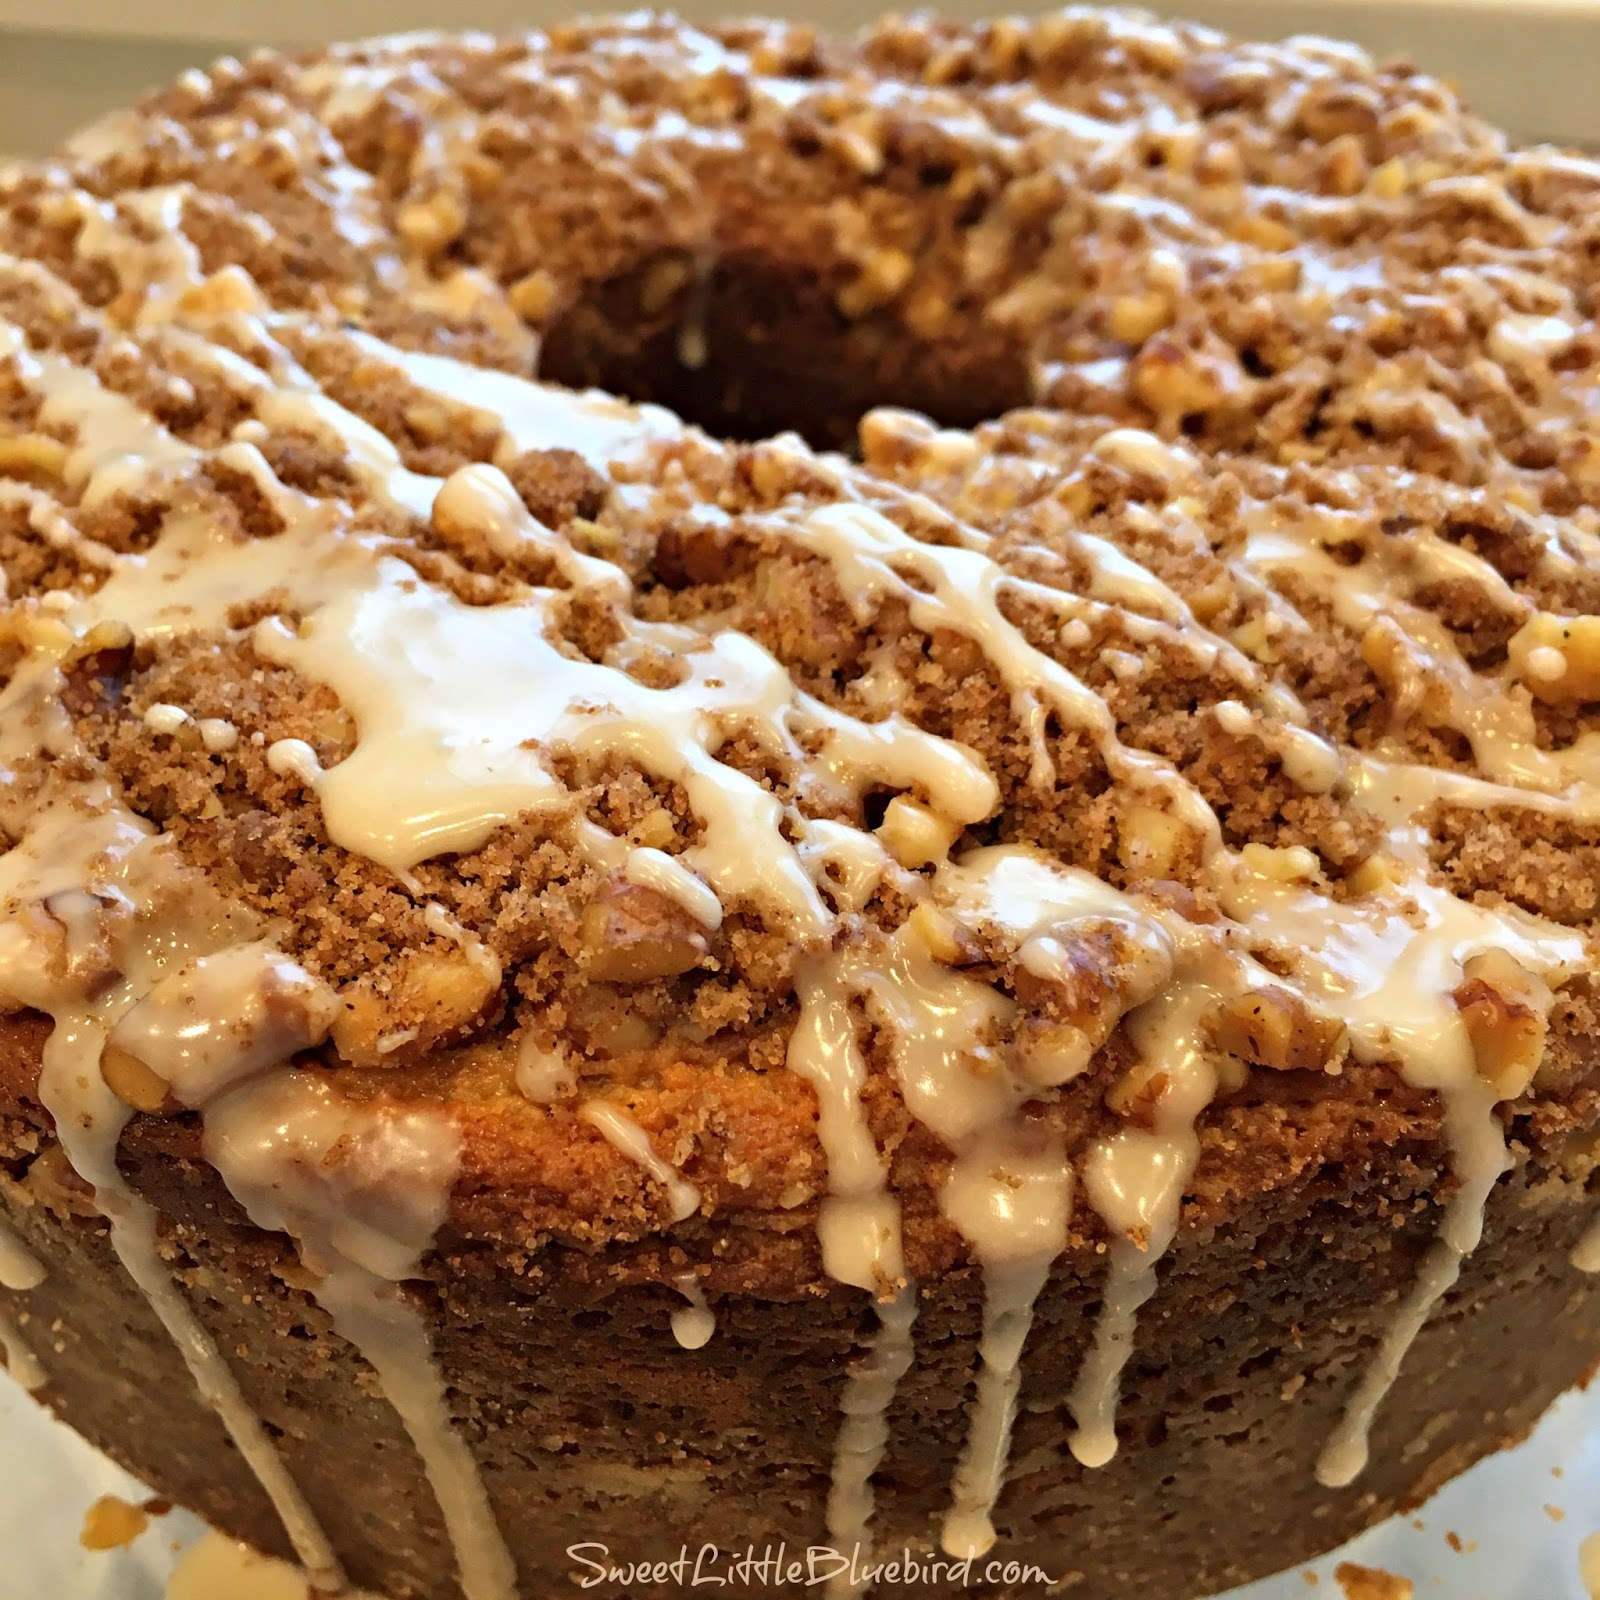 Sour Cream Coffee Cake Sweet Little Bluebird